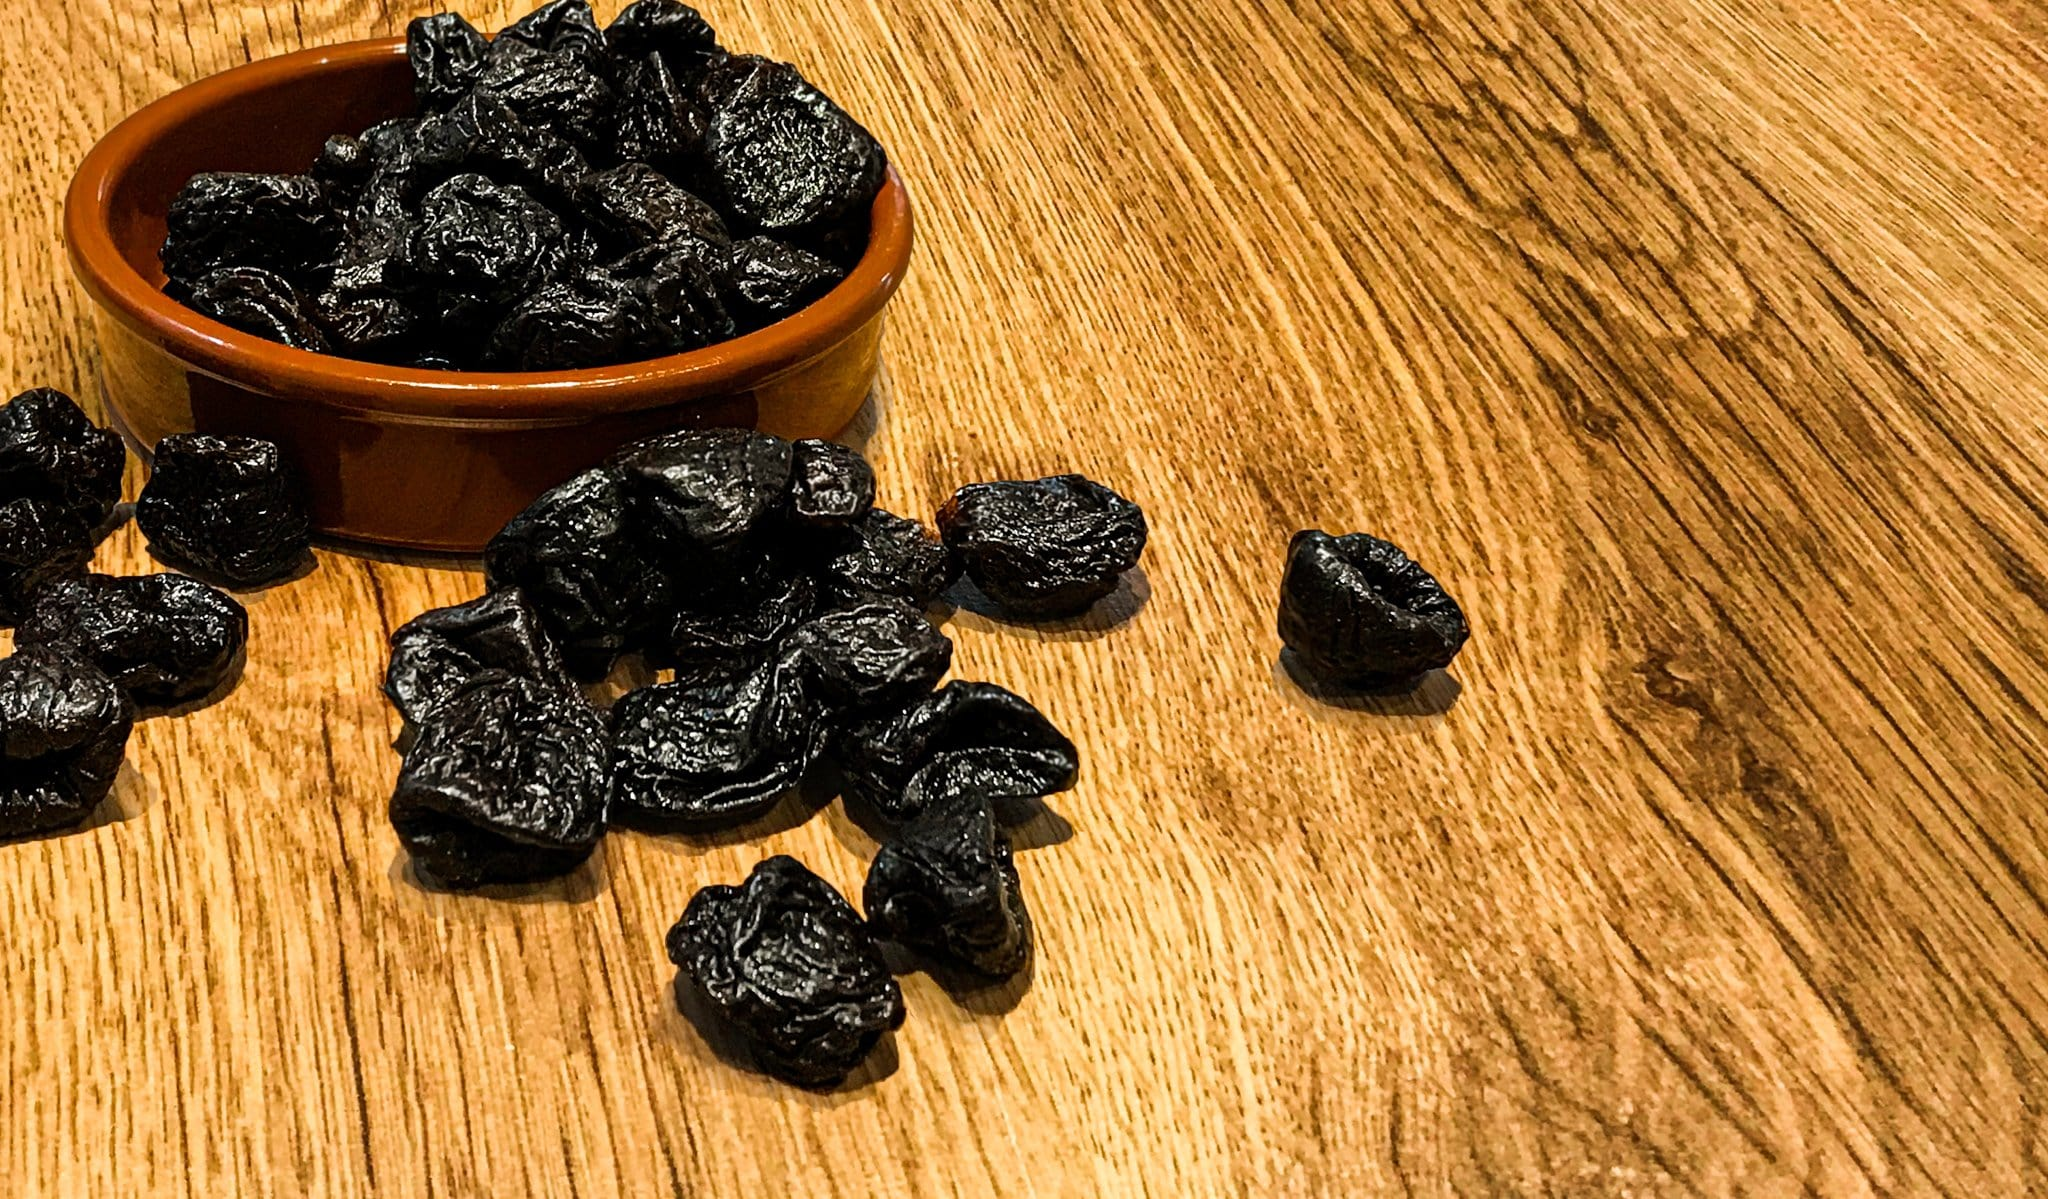 pitted prunes dried fruits fruit whole foods wholefoods health foods vegan plant based vegetarian diet superfood